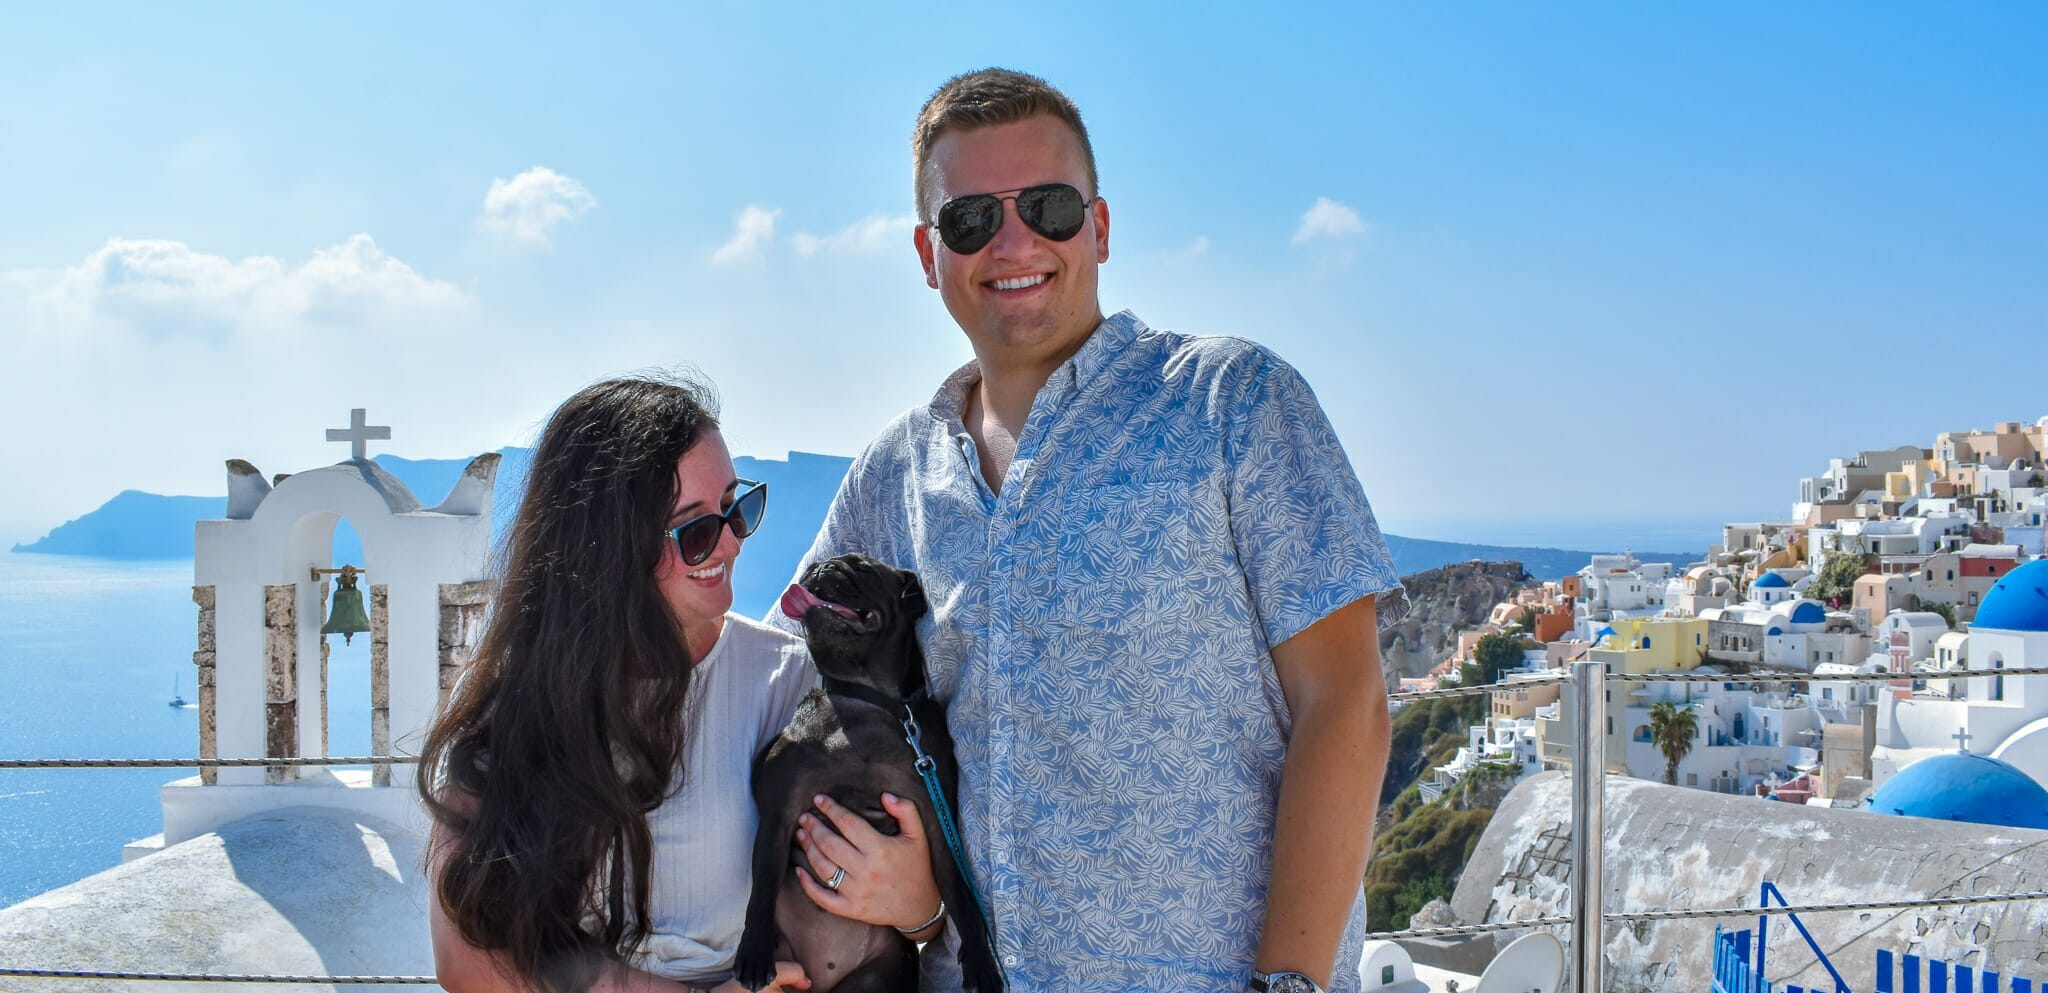 Pebbles The Travelling Pug with Parents Hugh and Abbey